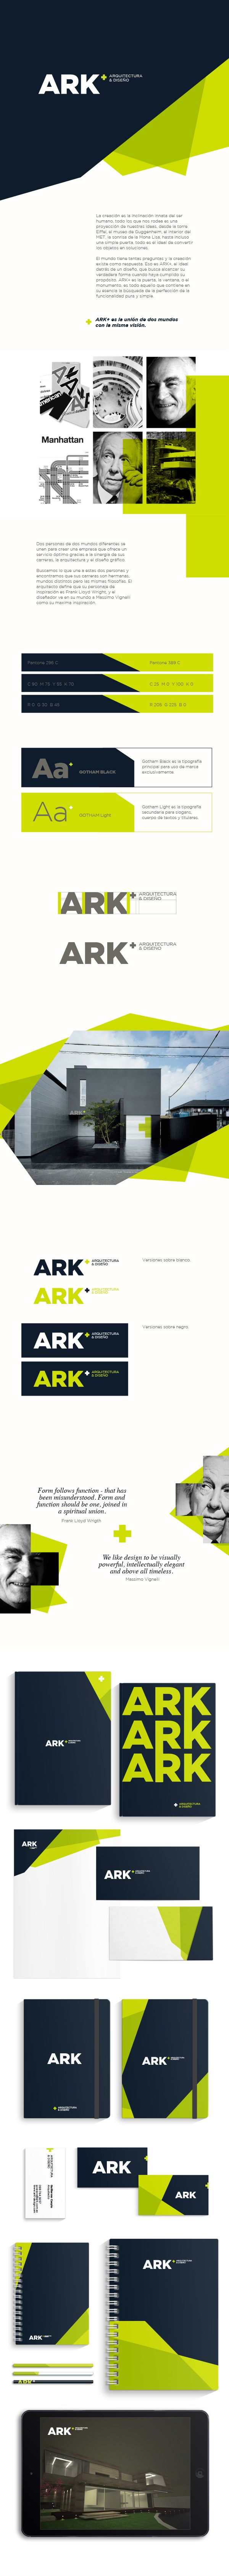 ARK+ Arquitectura & Diseño on Behance